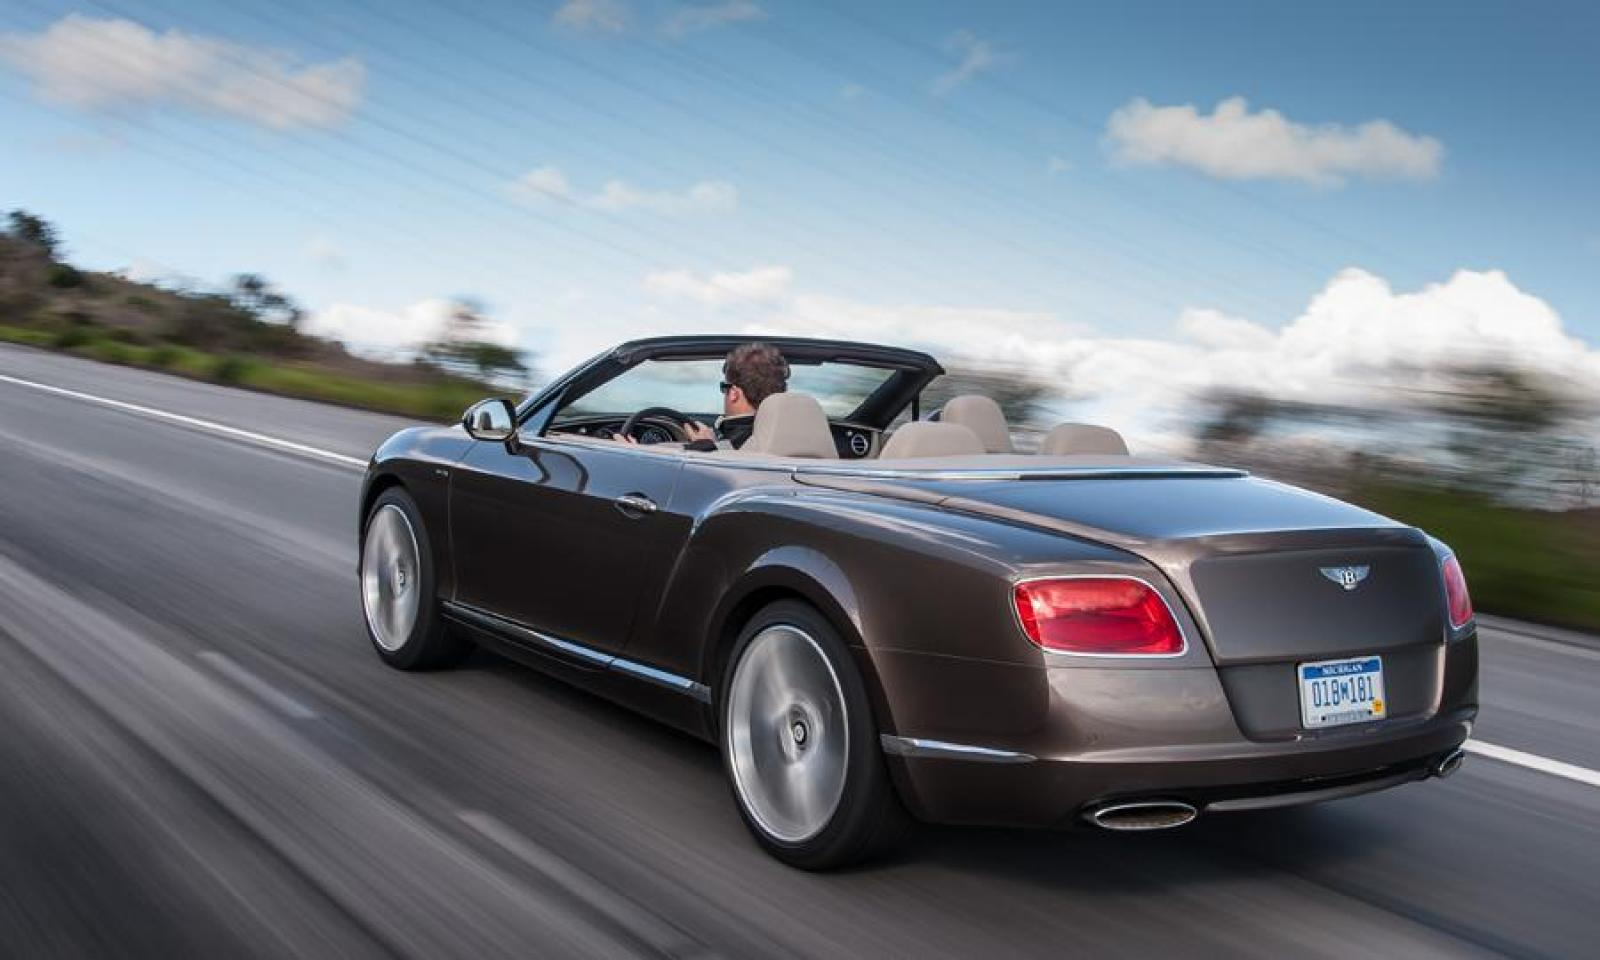 2014 bentley continental gtc information and photos zombiedrive. Cars Review. Best American Auto & Cars Review